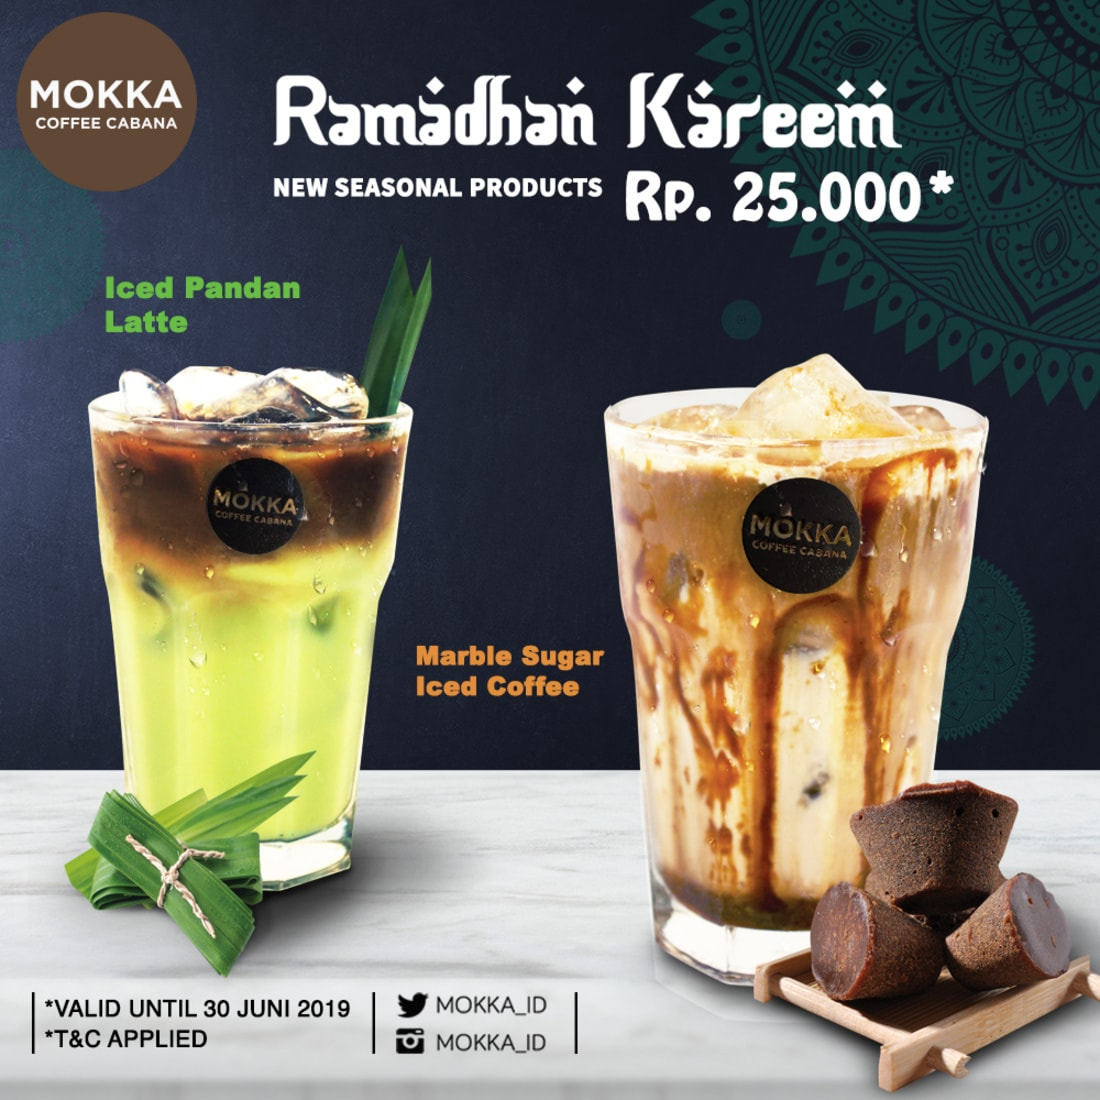 MOKKA COFFEE CABANA Present New Seasonal Products – Ramadhan Kareem